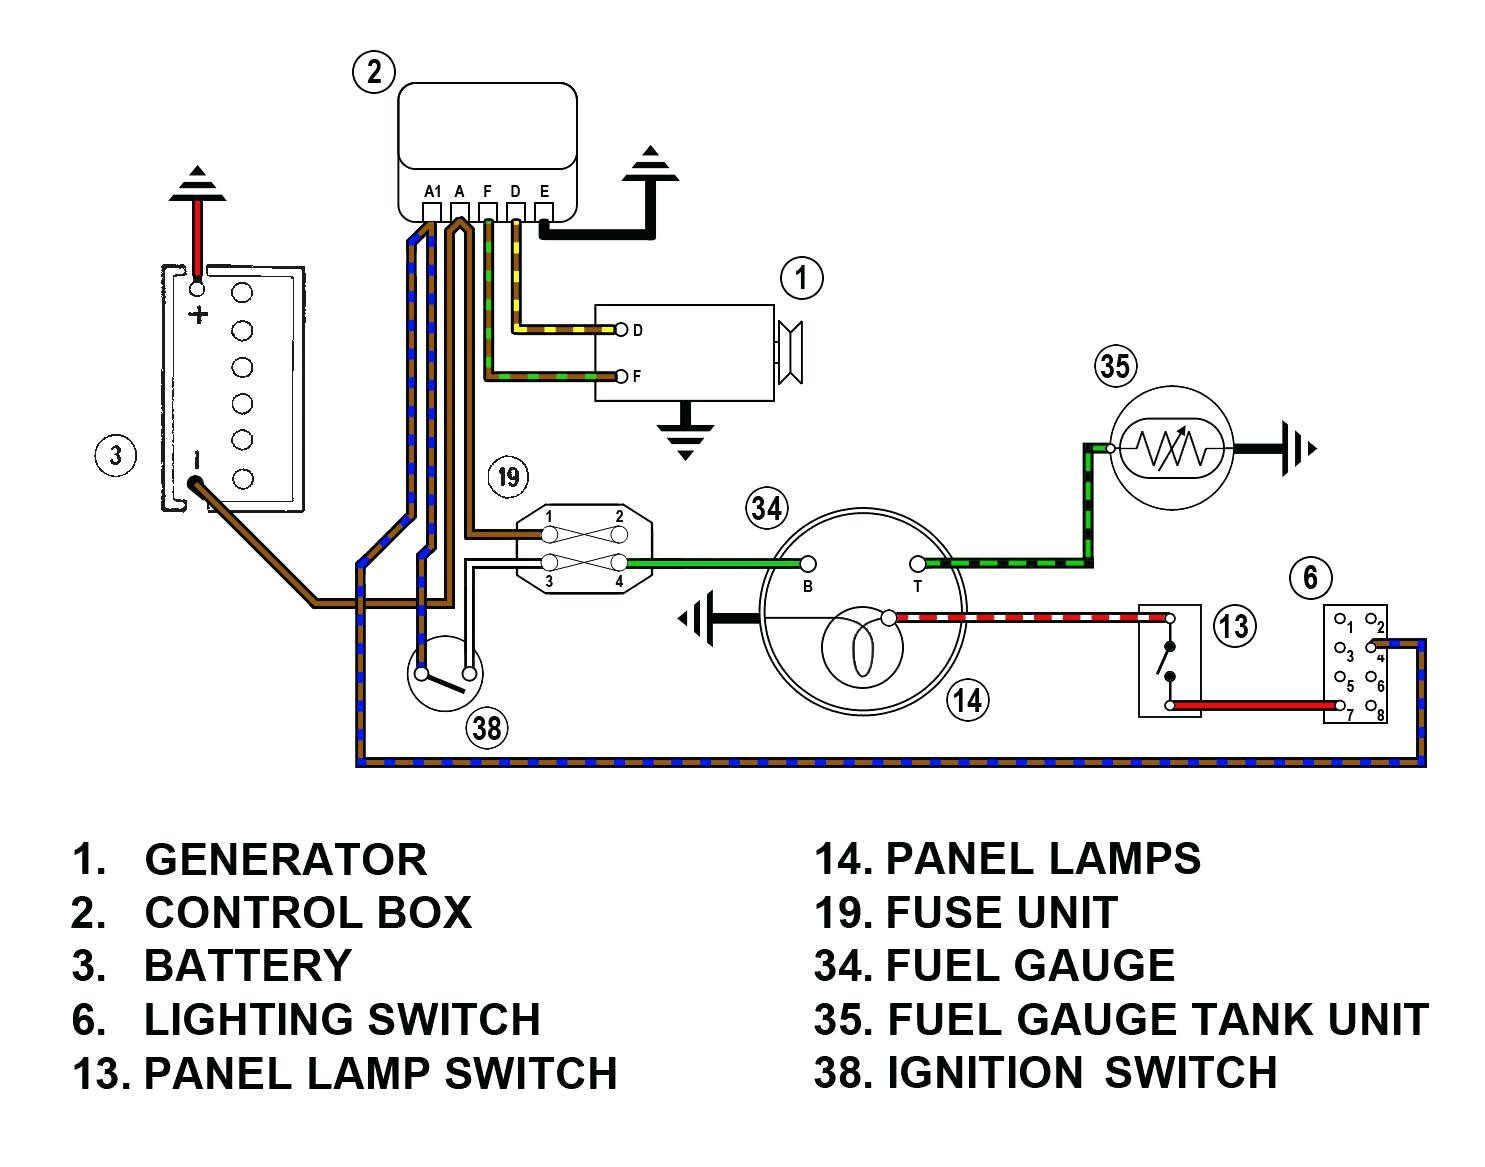 Full Size of Wiring Diagram For Trailer Connector Fuel Gauge Gm 2 Battery Boat Paper Generator